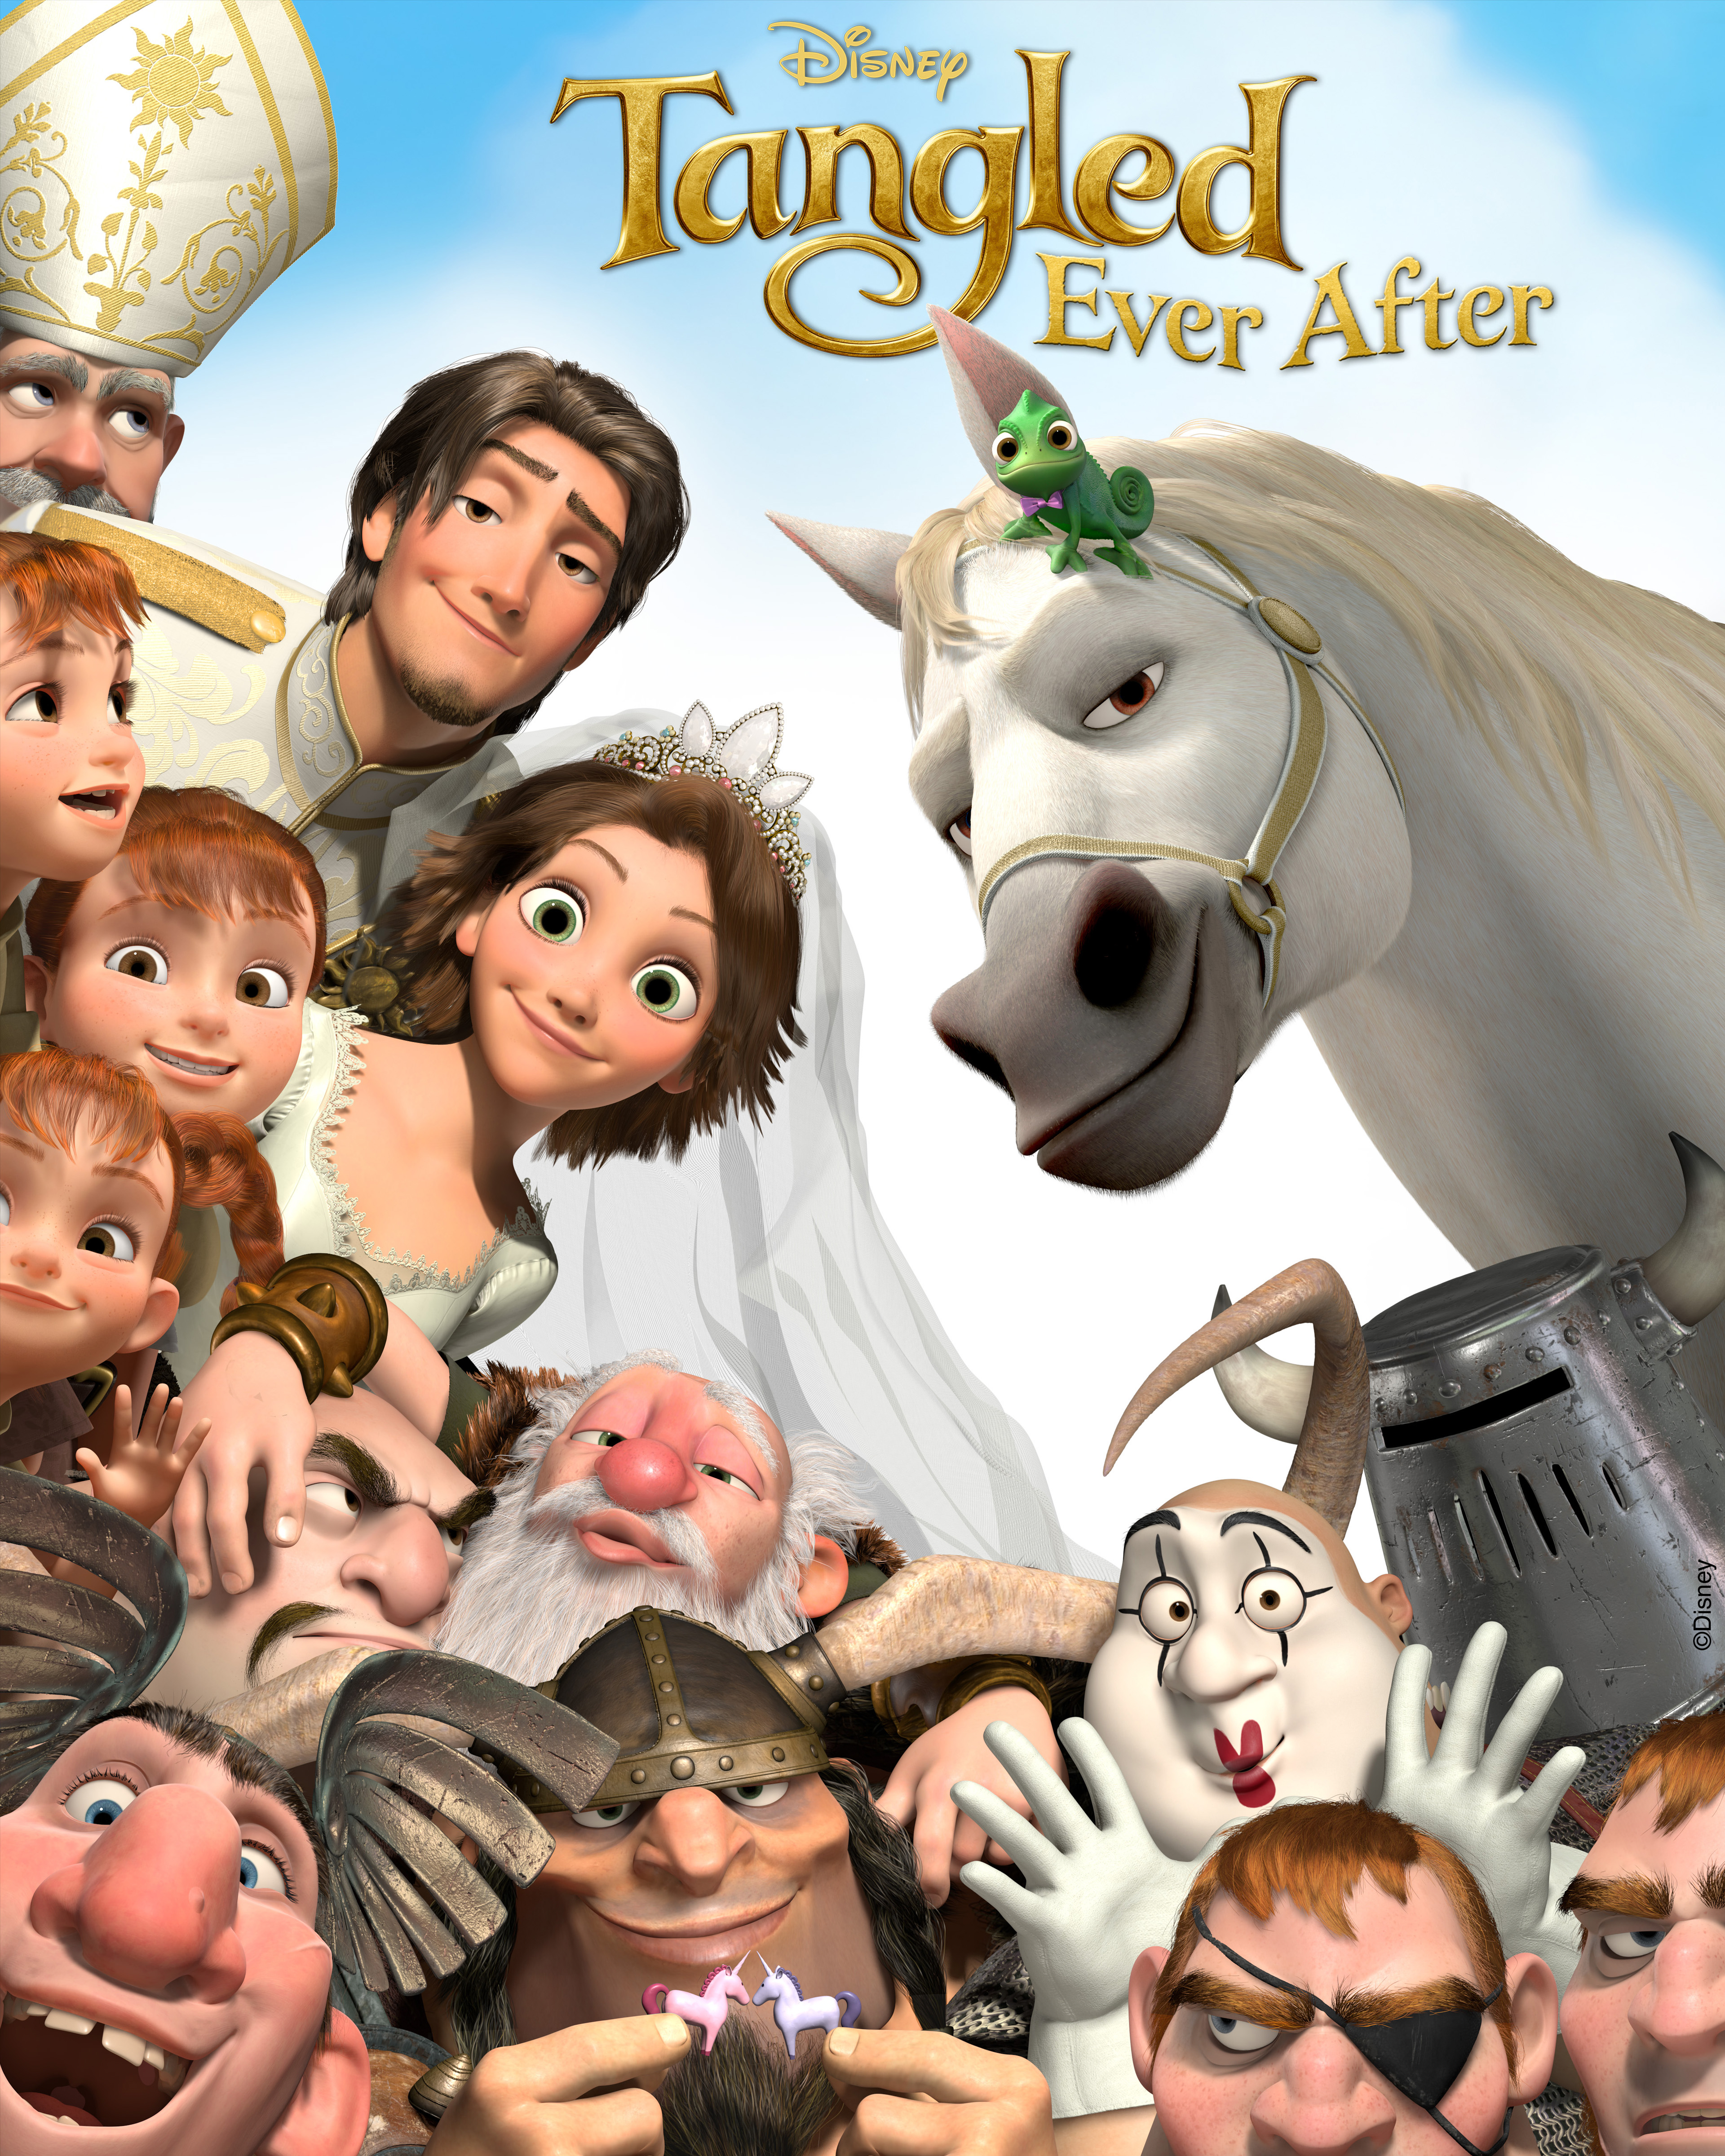 Tangled ever after the film beauty and the beast 3d opens january 13